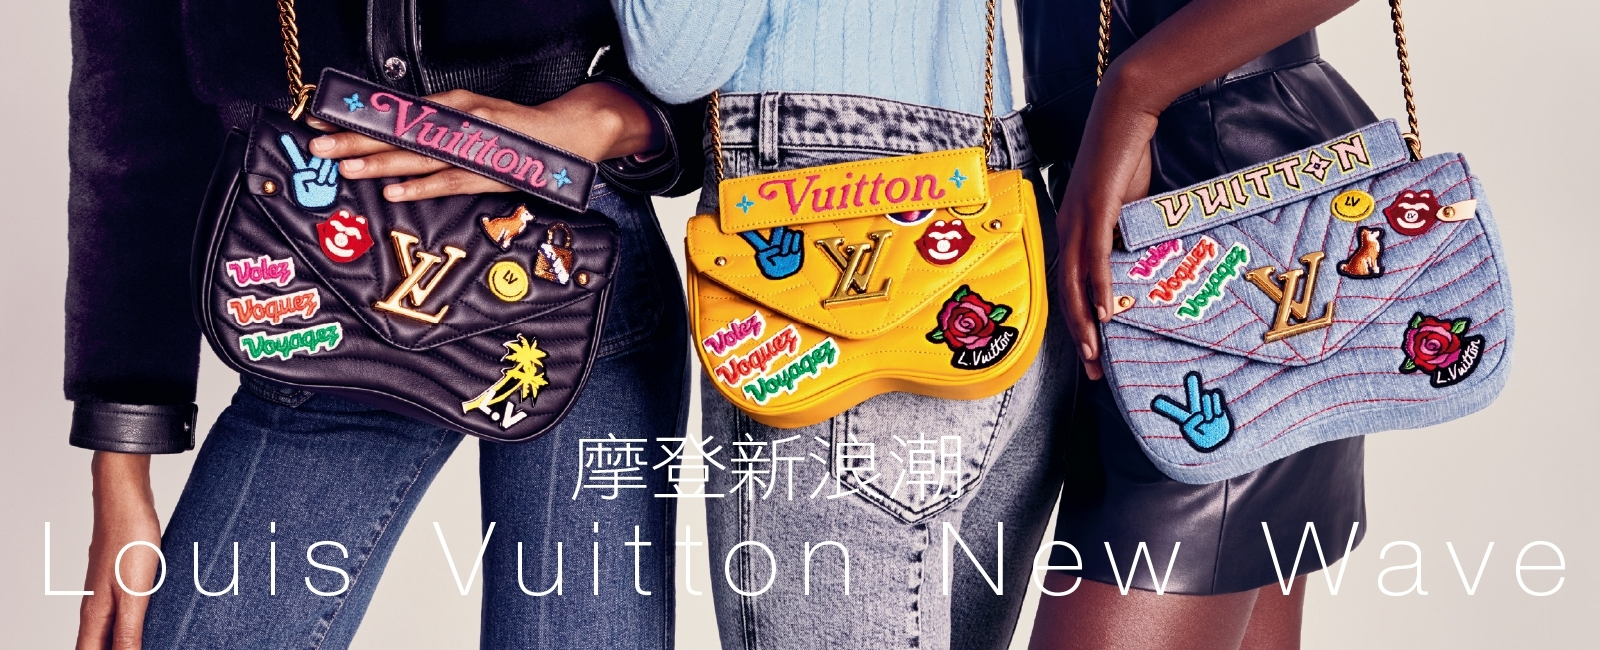 Louis Vuitton    摩登新浪潮